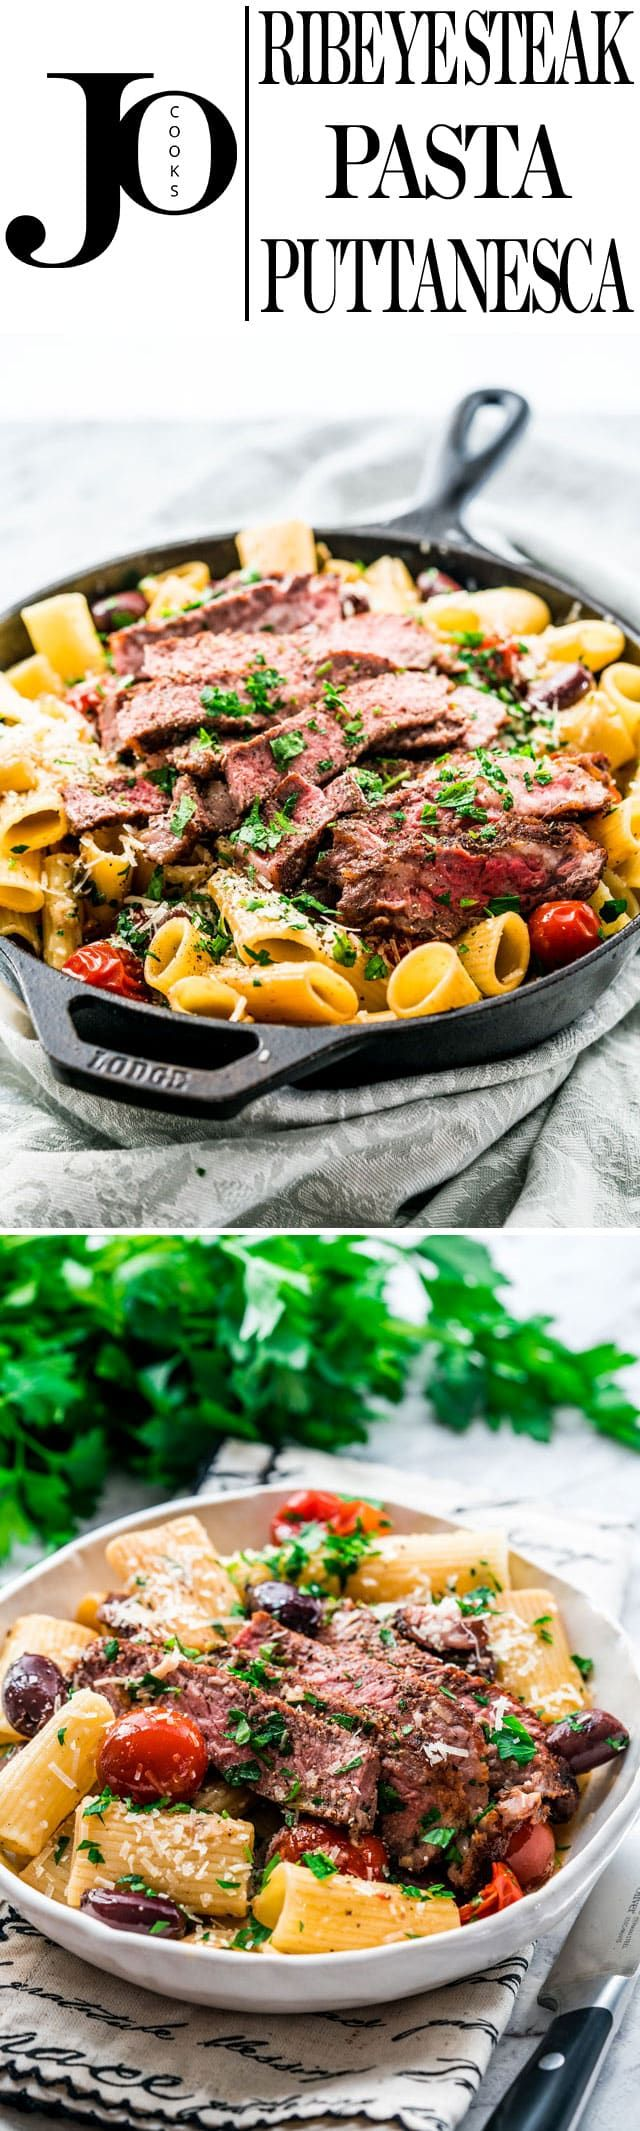 This Ribeye Steak Pasta Puttanesca is perfect for the meat eater in your life and simple enough for a fabulous weeknight meal. A classic and simple pasta dish with cherry tomatoes, olives and capers and a perfectly pan fried ribeye steak.